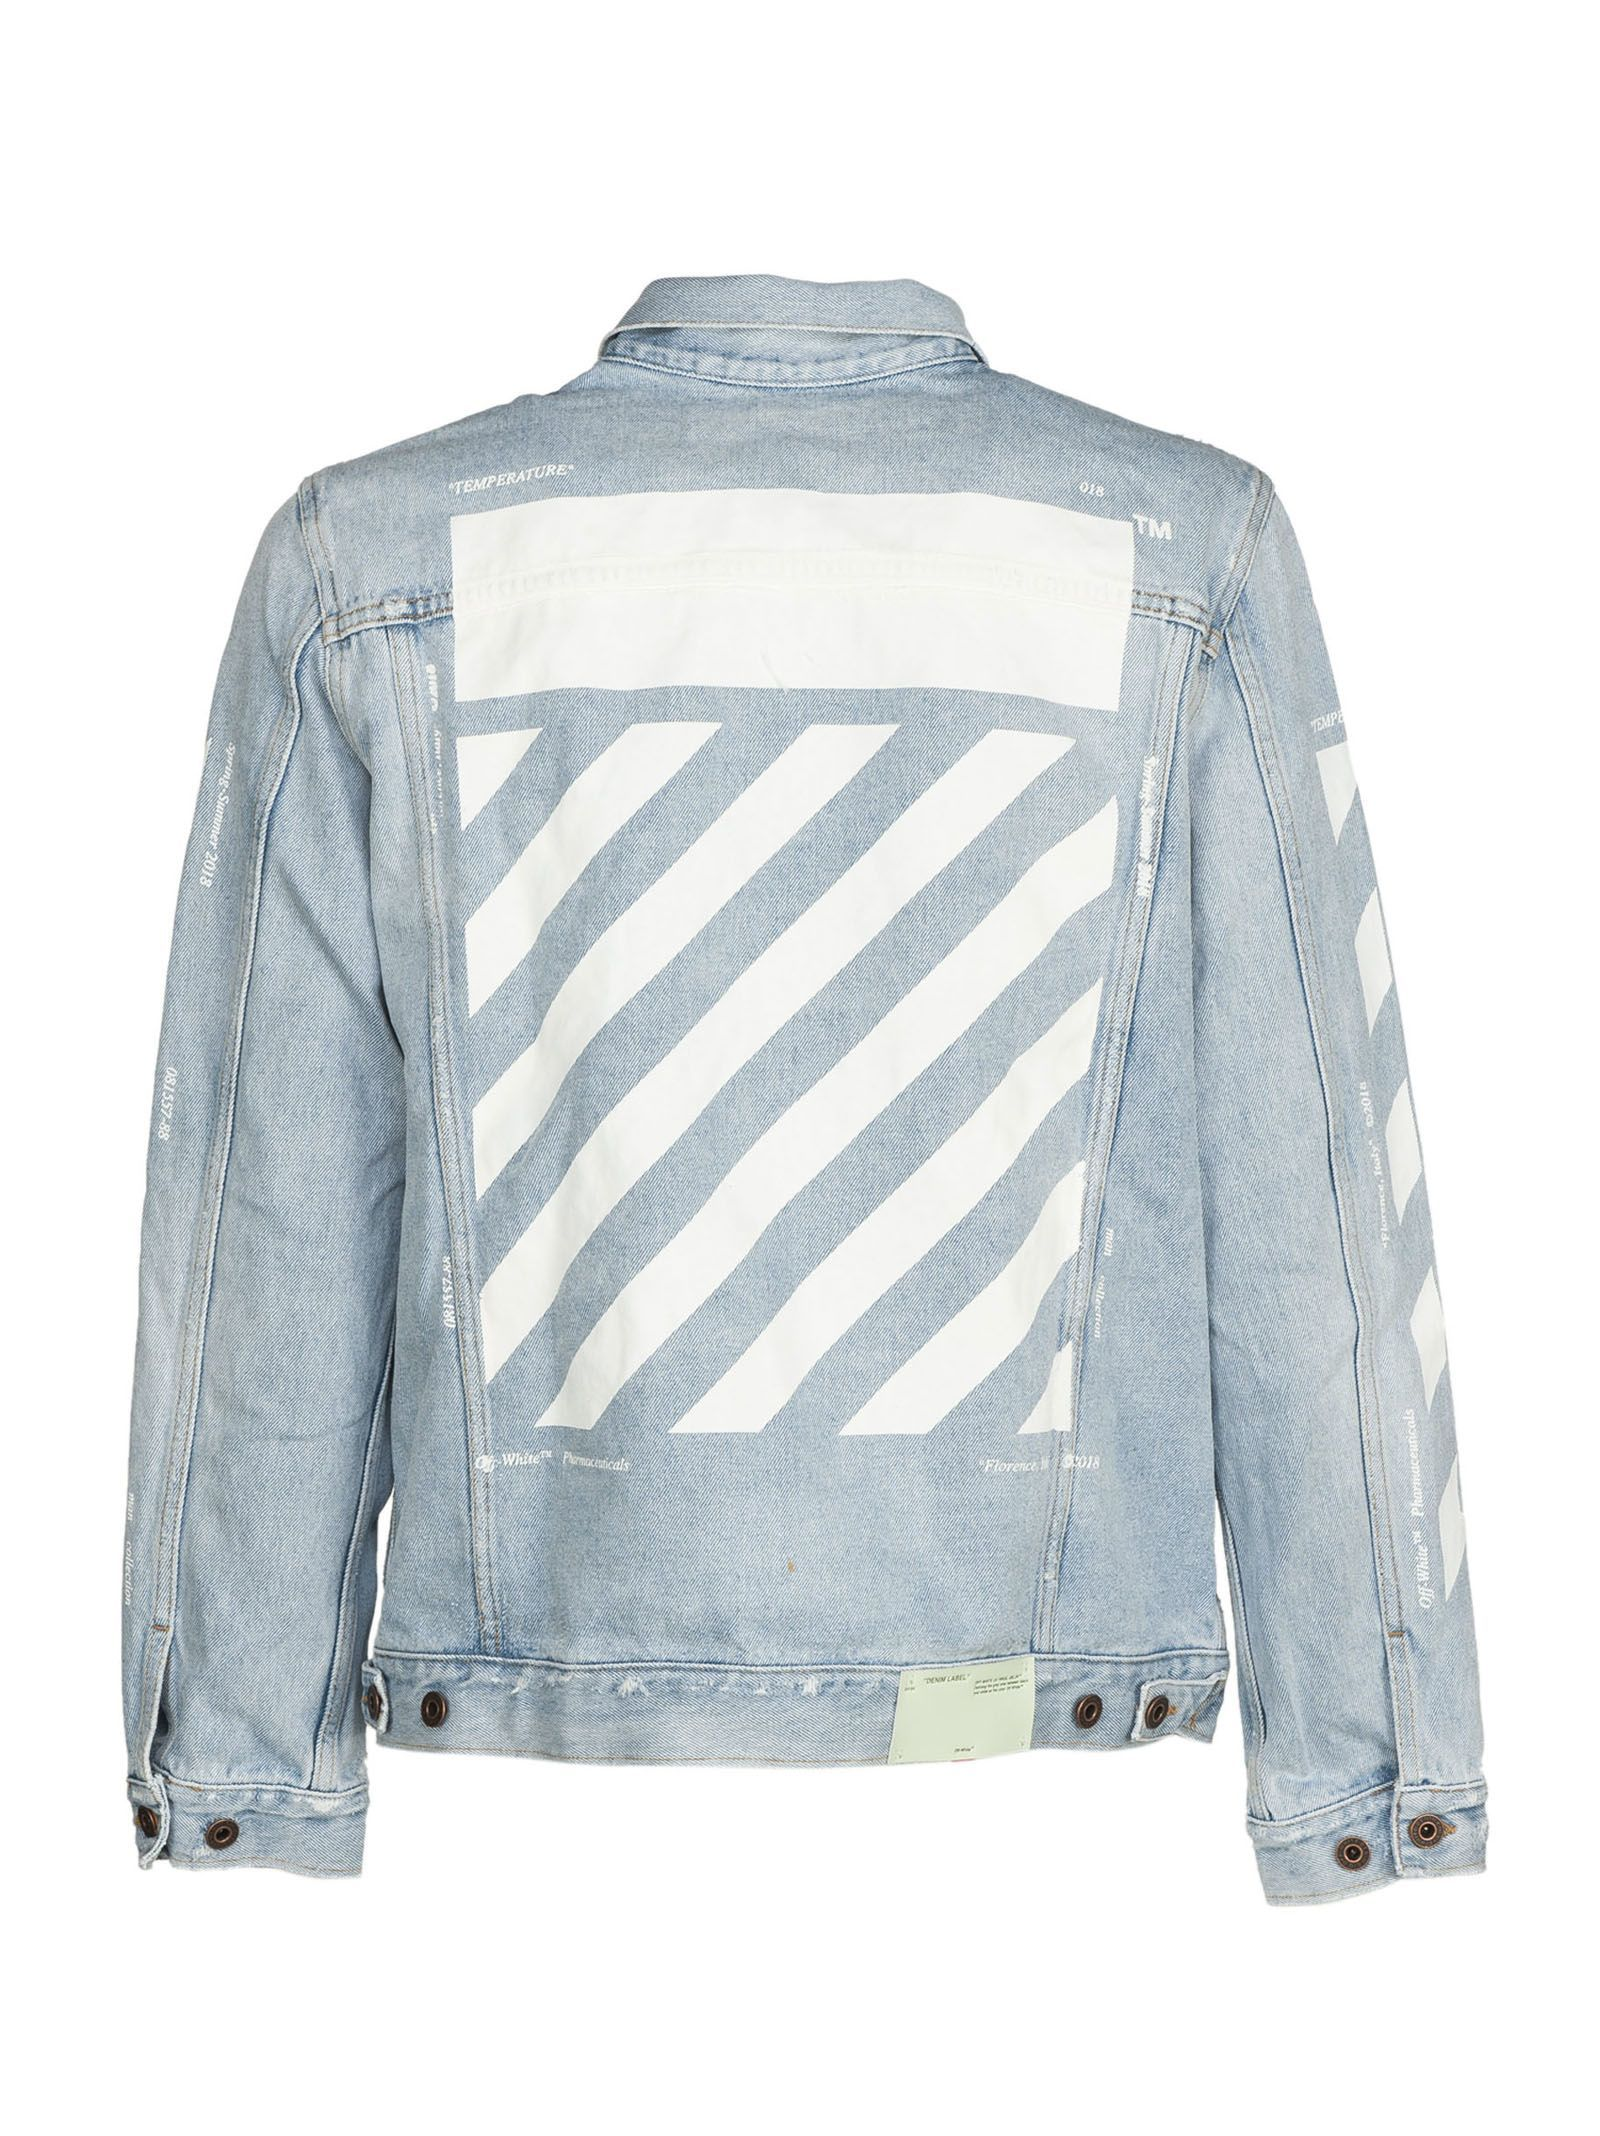 58852b8552a9 OFF-WHITE OFF-WHITE PRINTED DENIM JACKET.  off-white  cloth